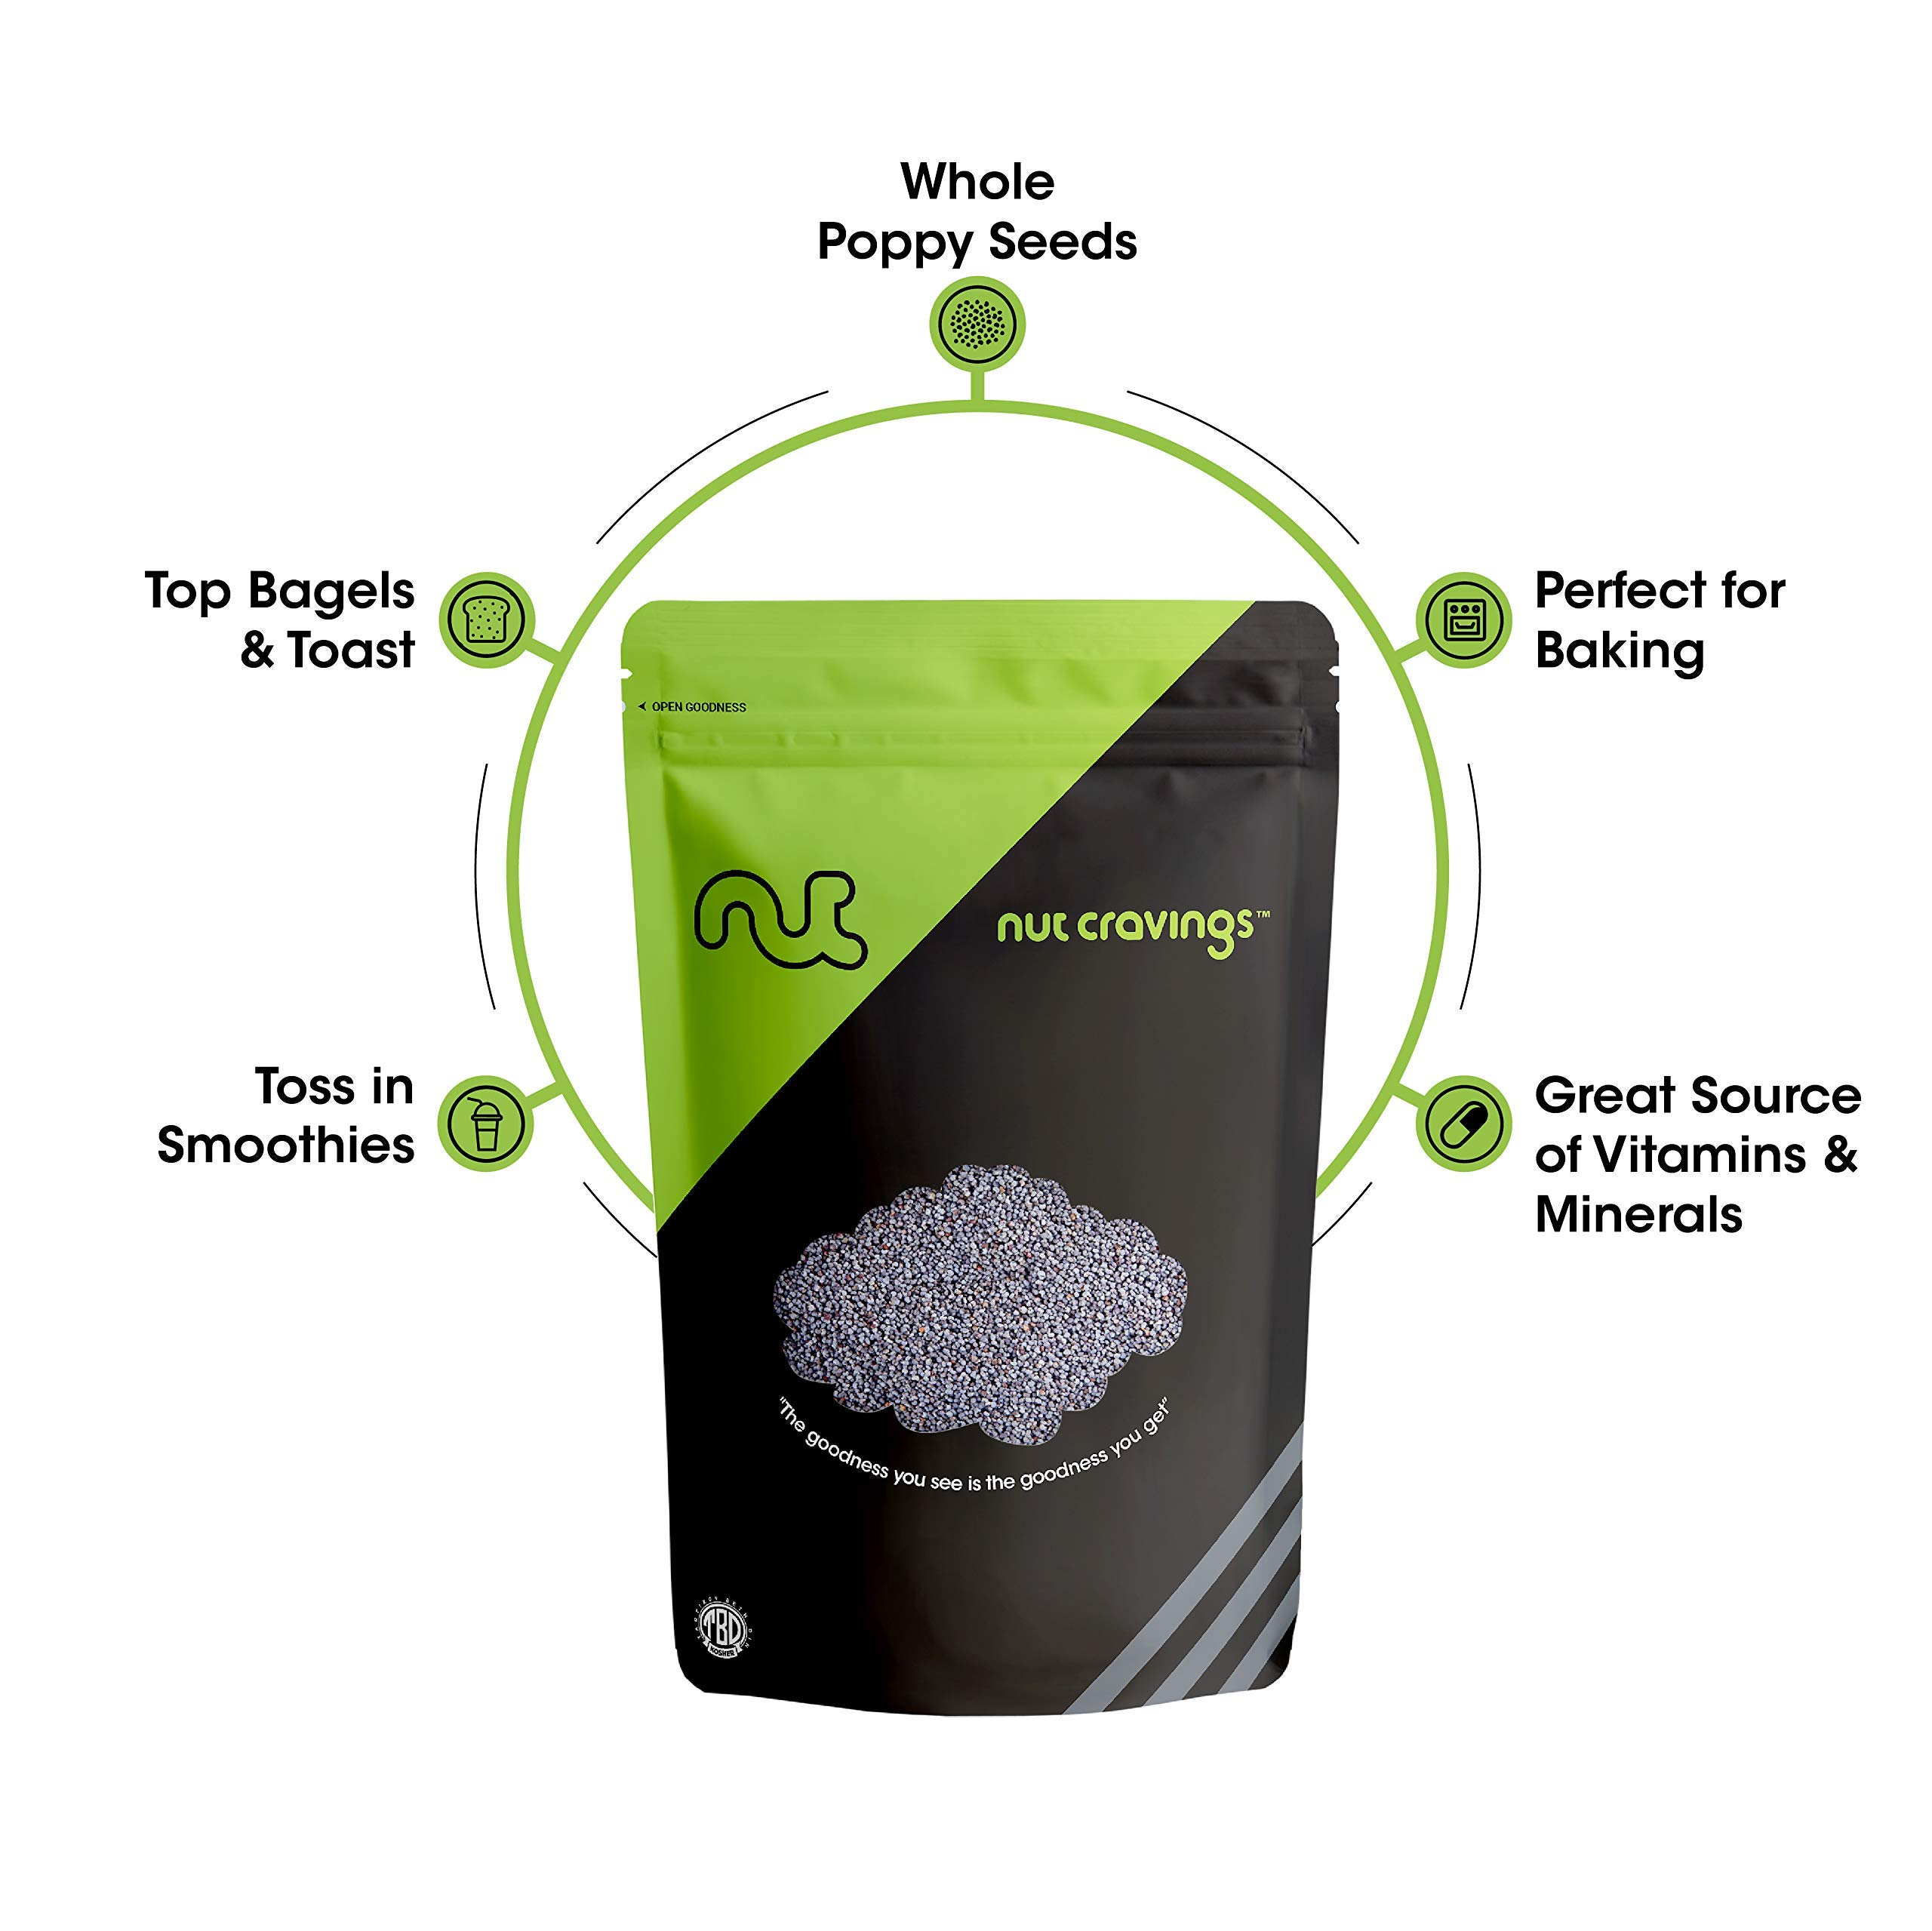 Nut Cravings - Whole Blue England Poppy Seeds (1 Pound) - Country of Origin United Kingdom - 16 Ounce by Nut Cravings (Image #4)